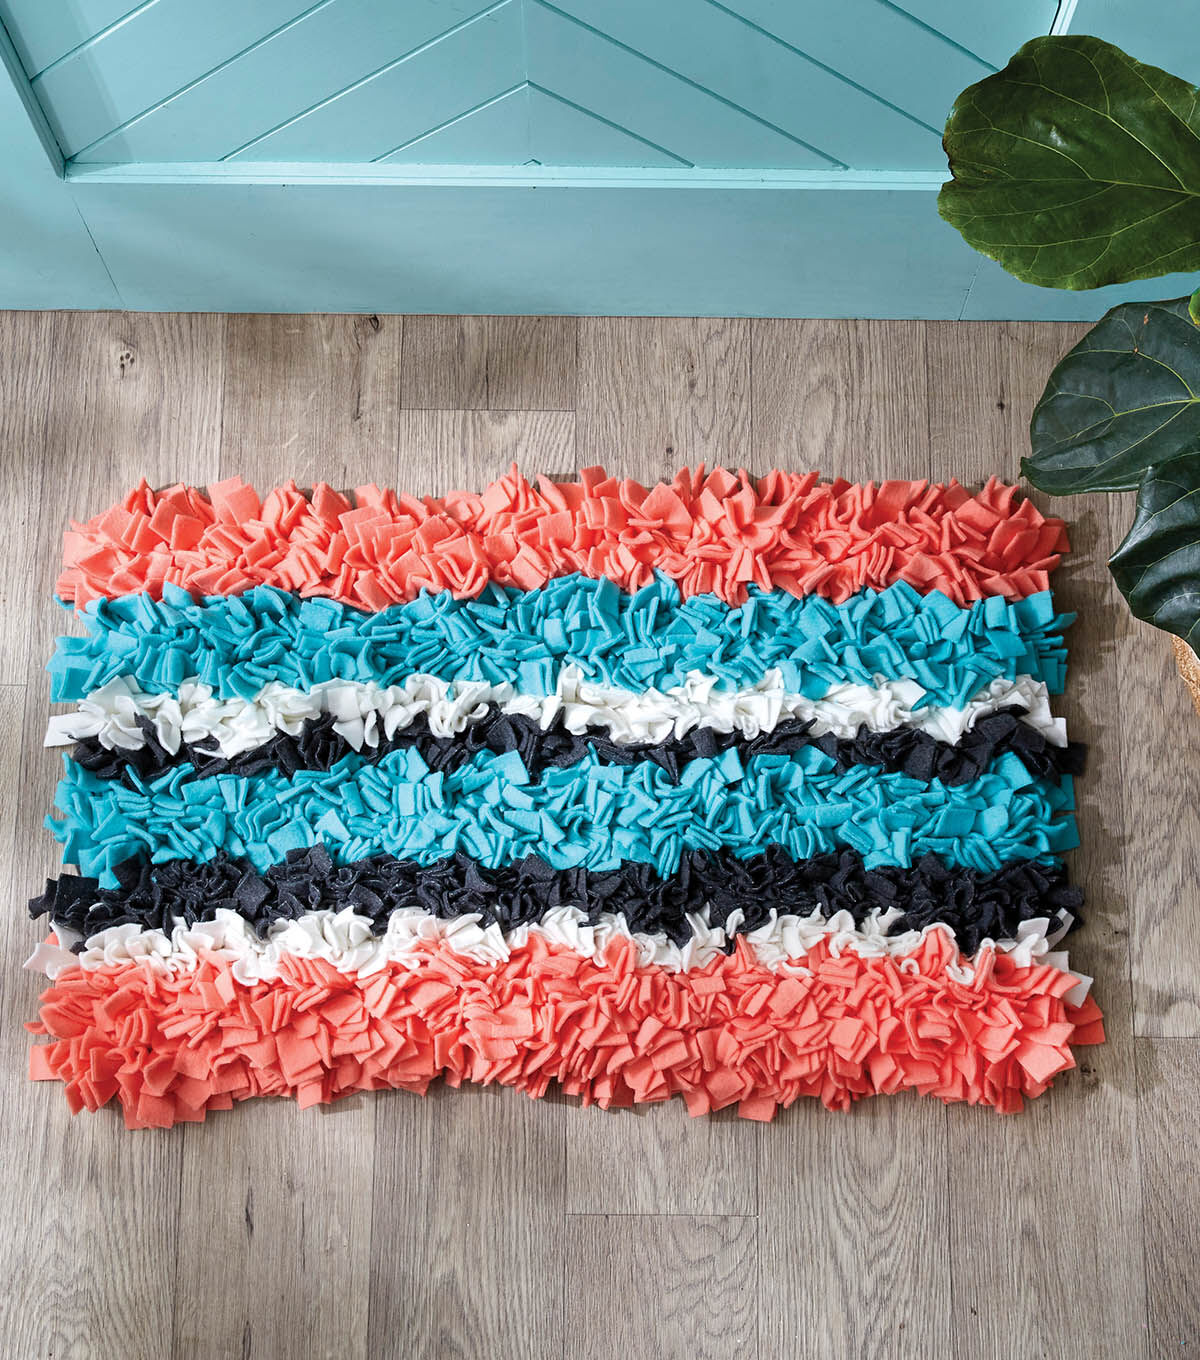 Delightful How To Make A Blizzard Fleece Shag Rug